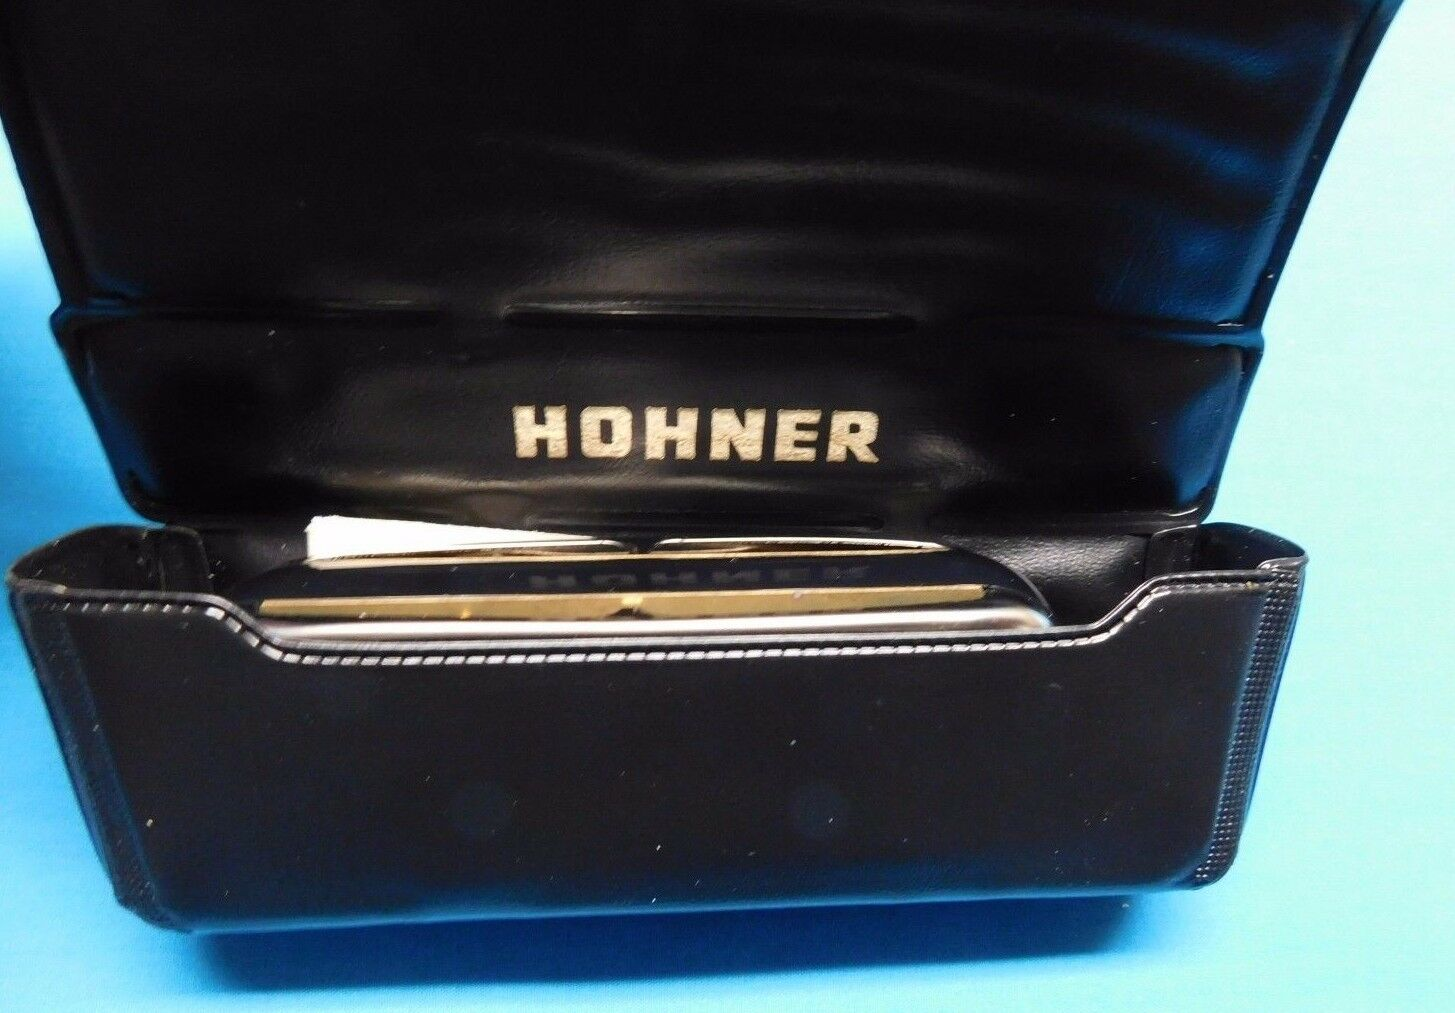 M. HOHNER CHROMETTA 8 250 32 C HARMONICA WITH CASE INSTRUCTIONS GREAT GERMANY